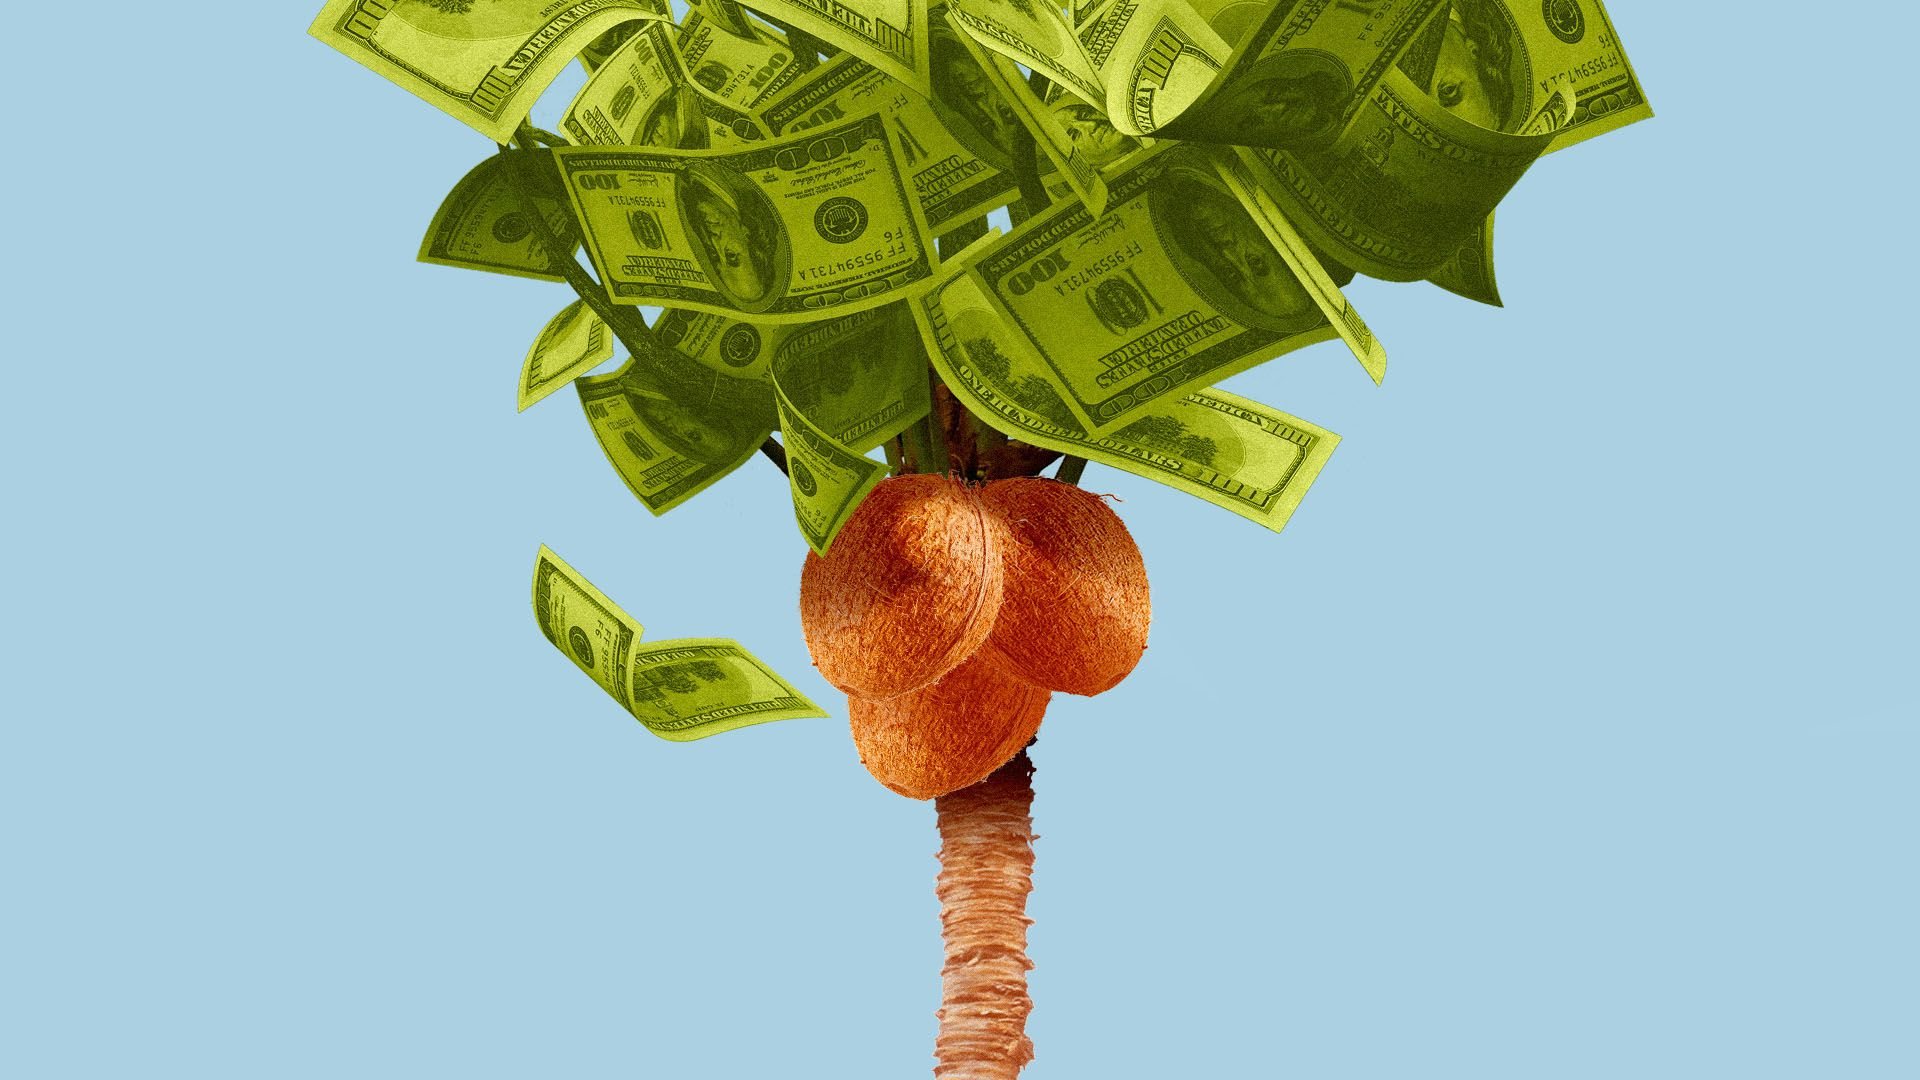 Coconuts up in a tree of money.